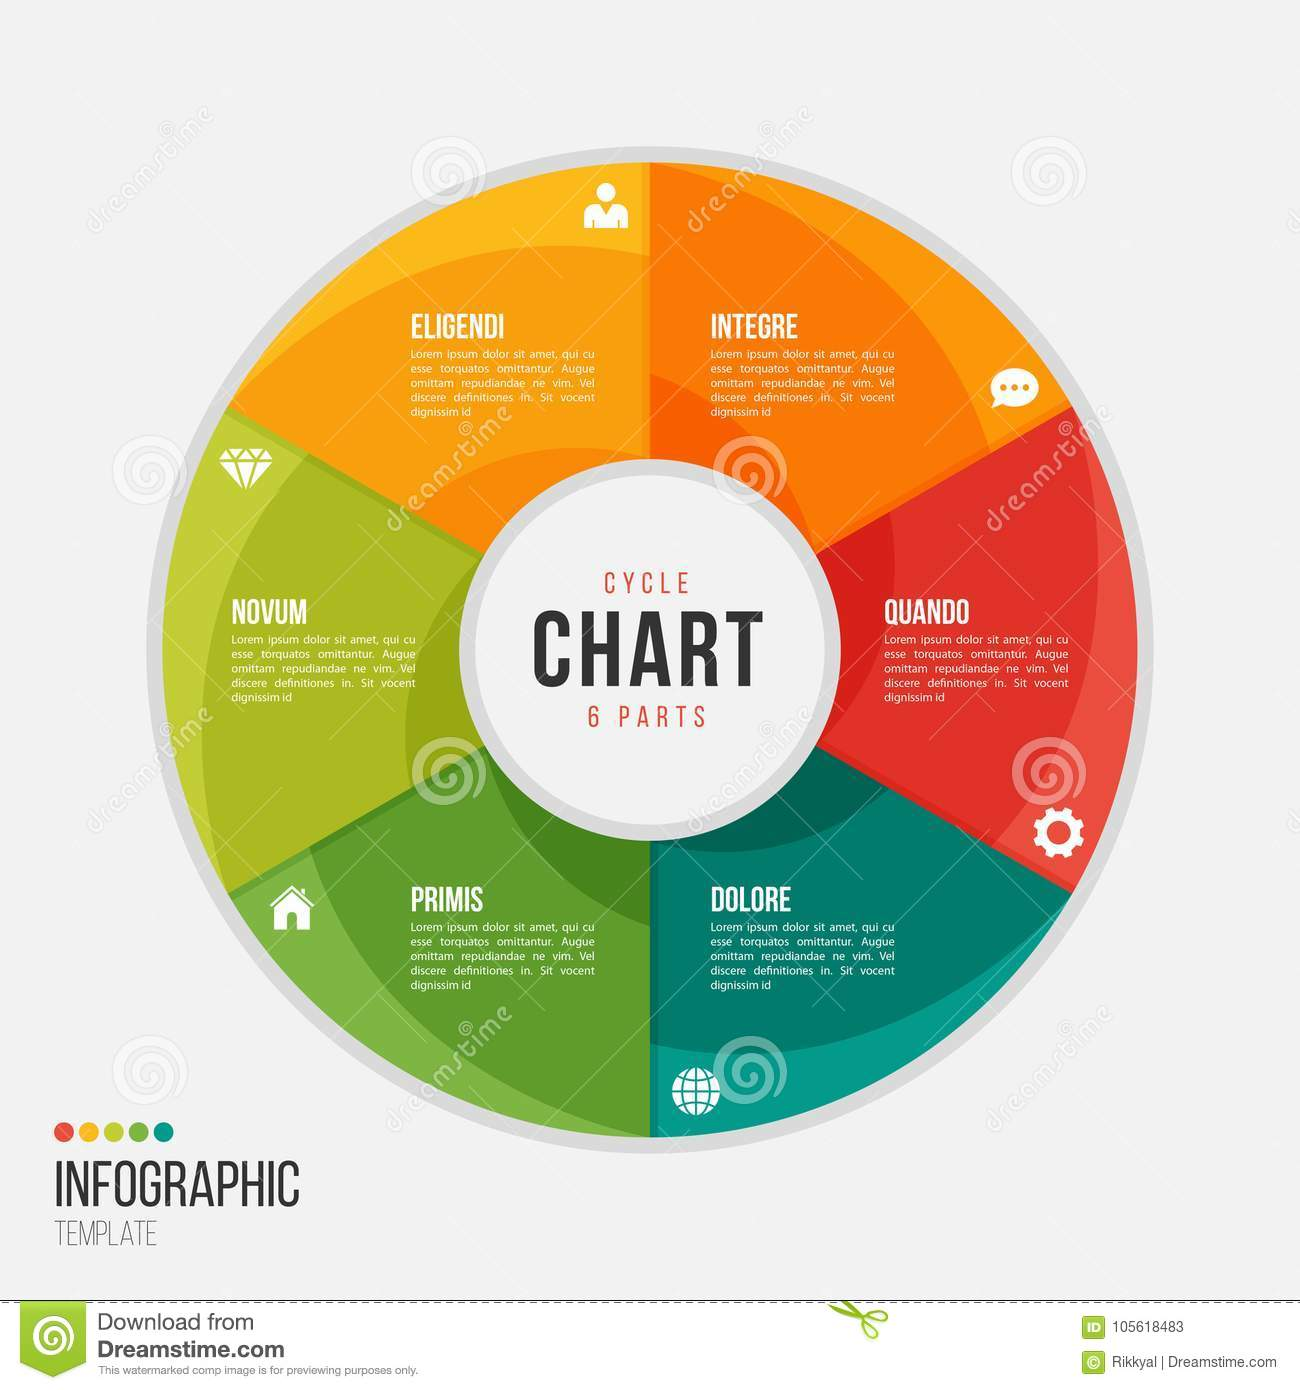 Cycle chart infographic template with 6 parts, options, steps